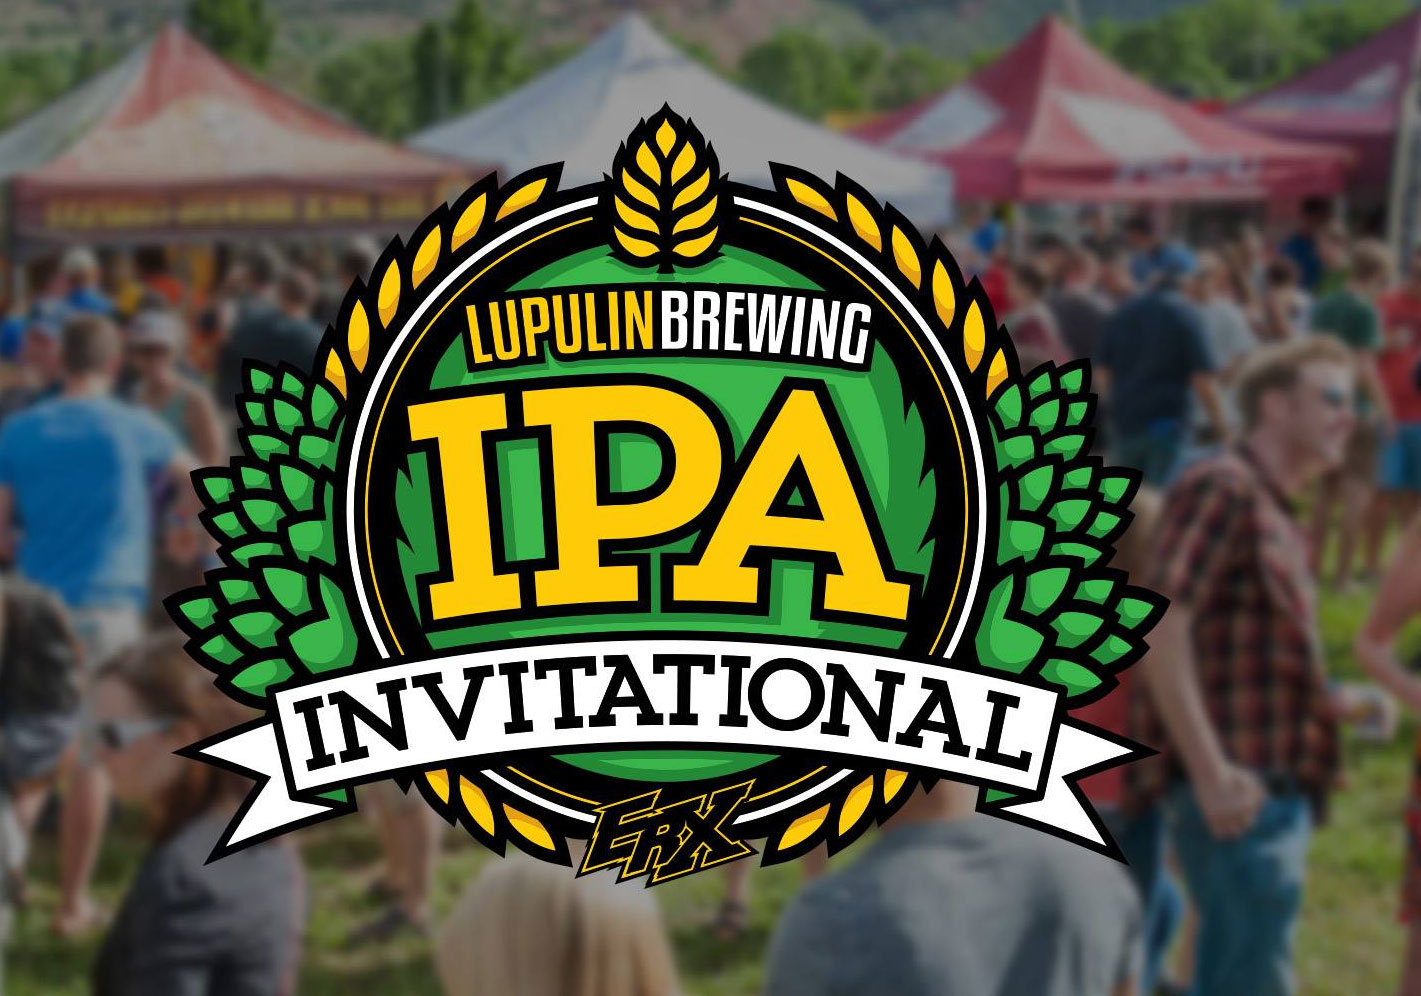 lupulin ipa invitational